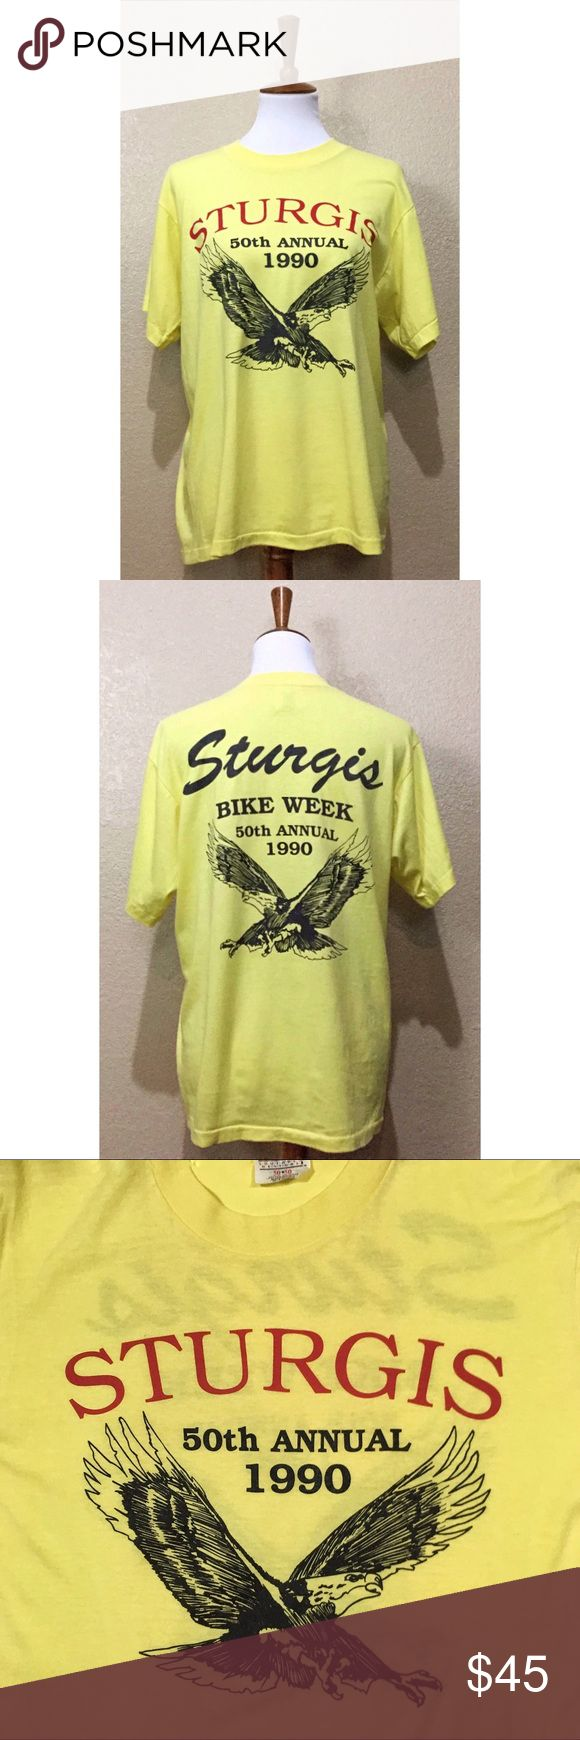 """VTG Sturgis Motorcycle Rally 50th Anniversary Tee Vintage 1990 Sturgis Bike Week Motorcycle Rally 50th Anniversary t-shirt from Hazelwood Southwest Designs. No stains or tears. Well loved, but graphics/lettering are still clean & bright (Upon close inspection back """"Sturgis"""" has light cracking). Offers welcome.   • Gender neutral.  • 50/50 Poly/Cotton Blend  • Length: 26""""  • Pit to Pit: 19 3/4"""" Vintage Tops Tees - Short Sleeve"""